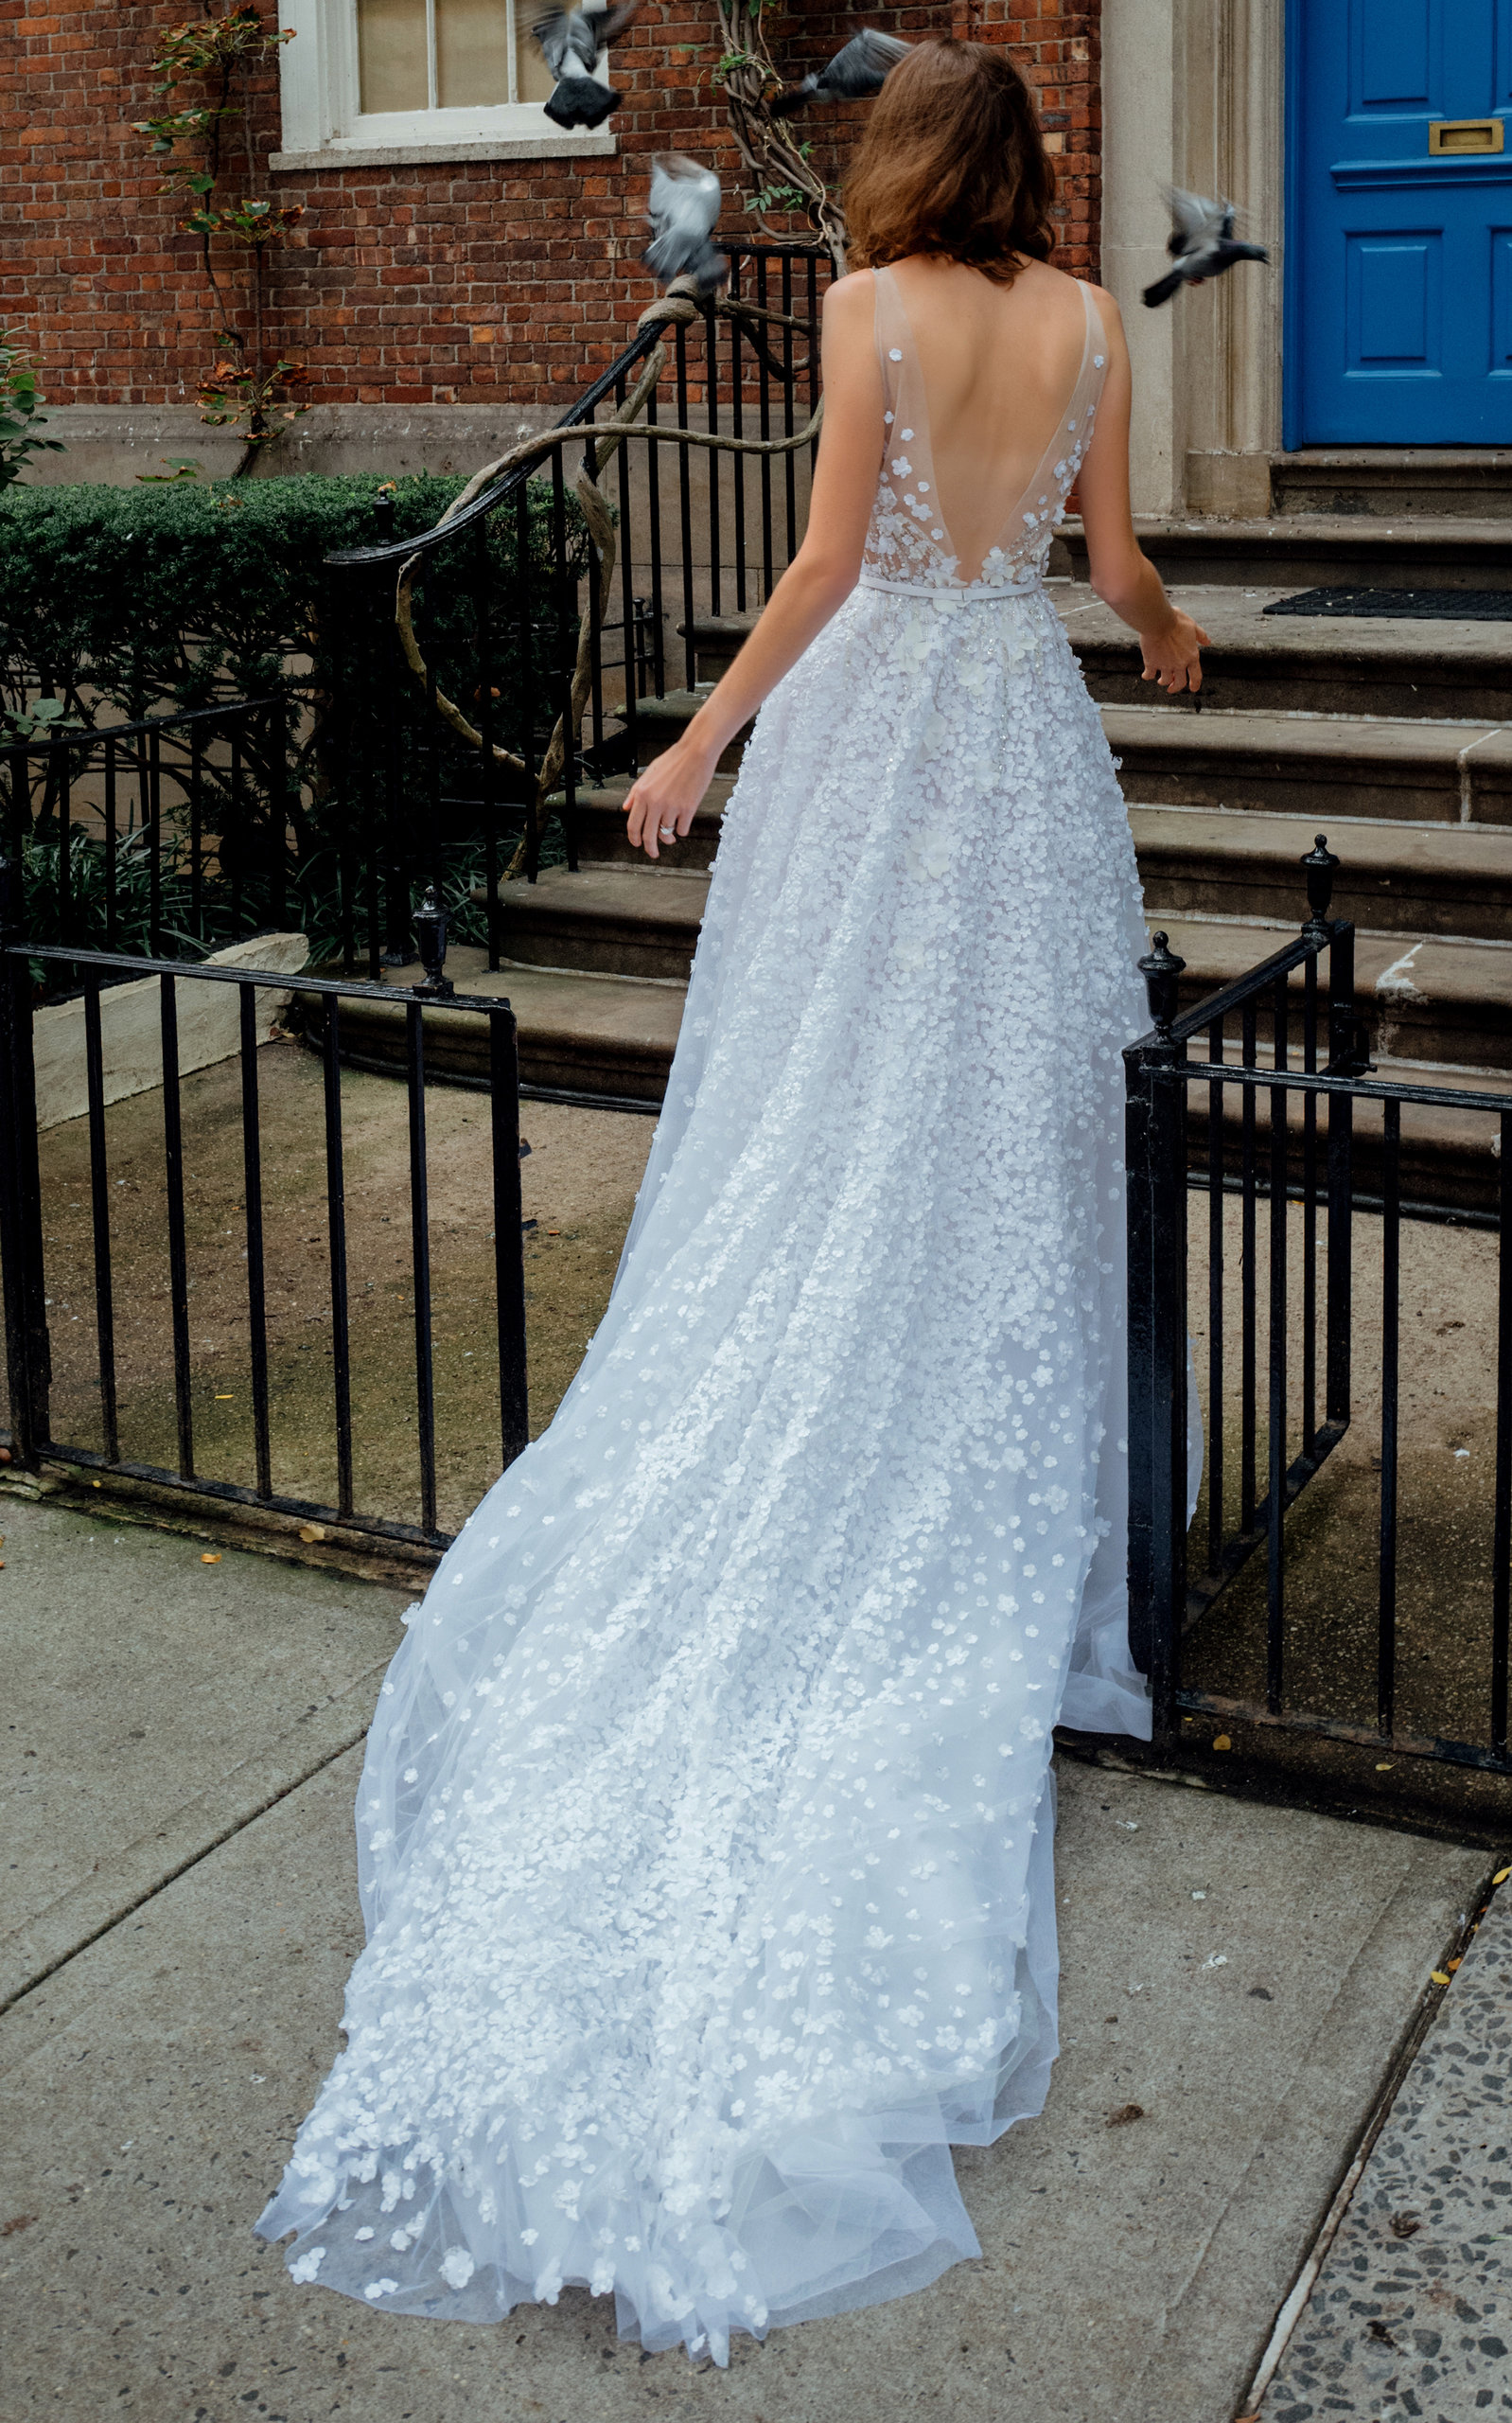 e24bedbcdf7 Gigi V Beaded Lace Gown With Train by Mira Zwillinger